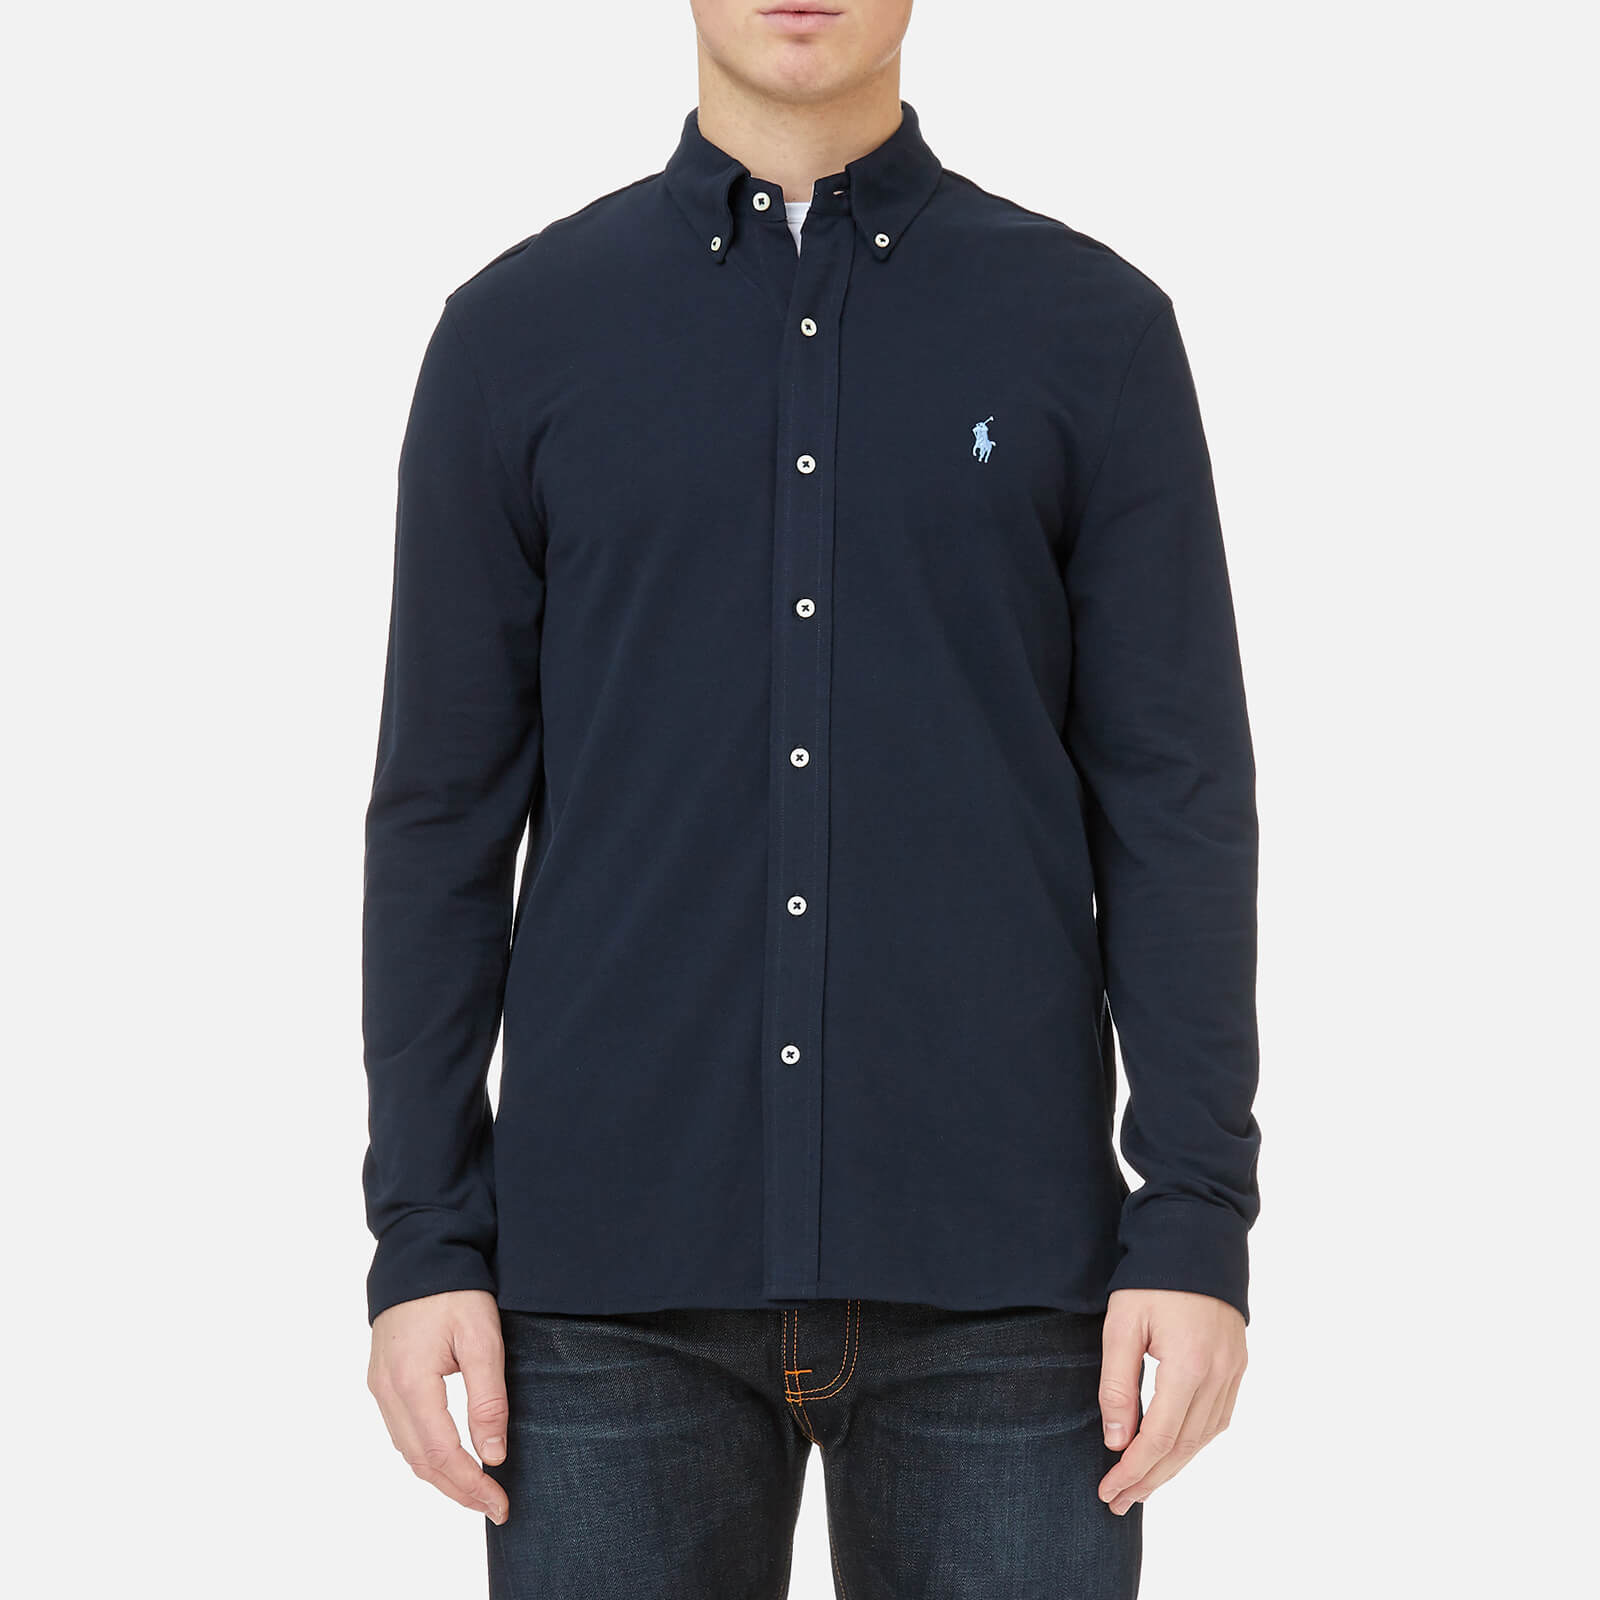 b67e56c9 Polo Ralph Lauren Men's Featherweight Mesh Long Sleeve Shirt - Aviator Navy  - Free UK Delivery over £50